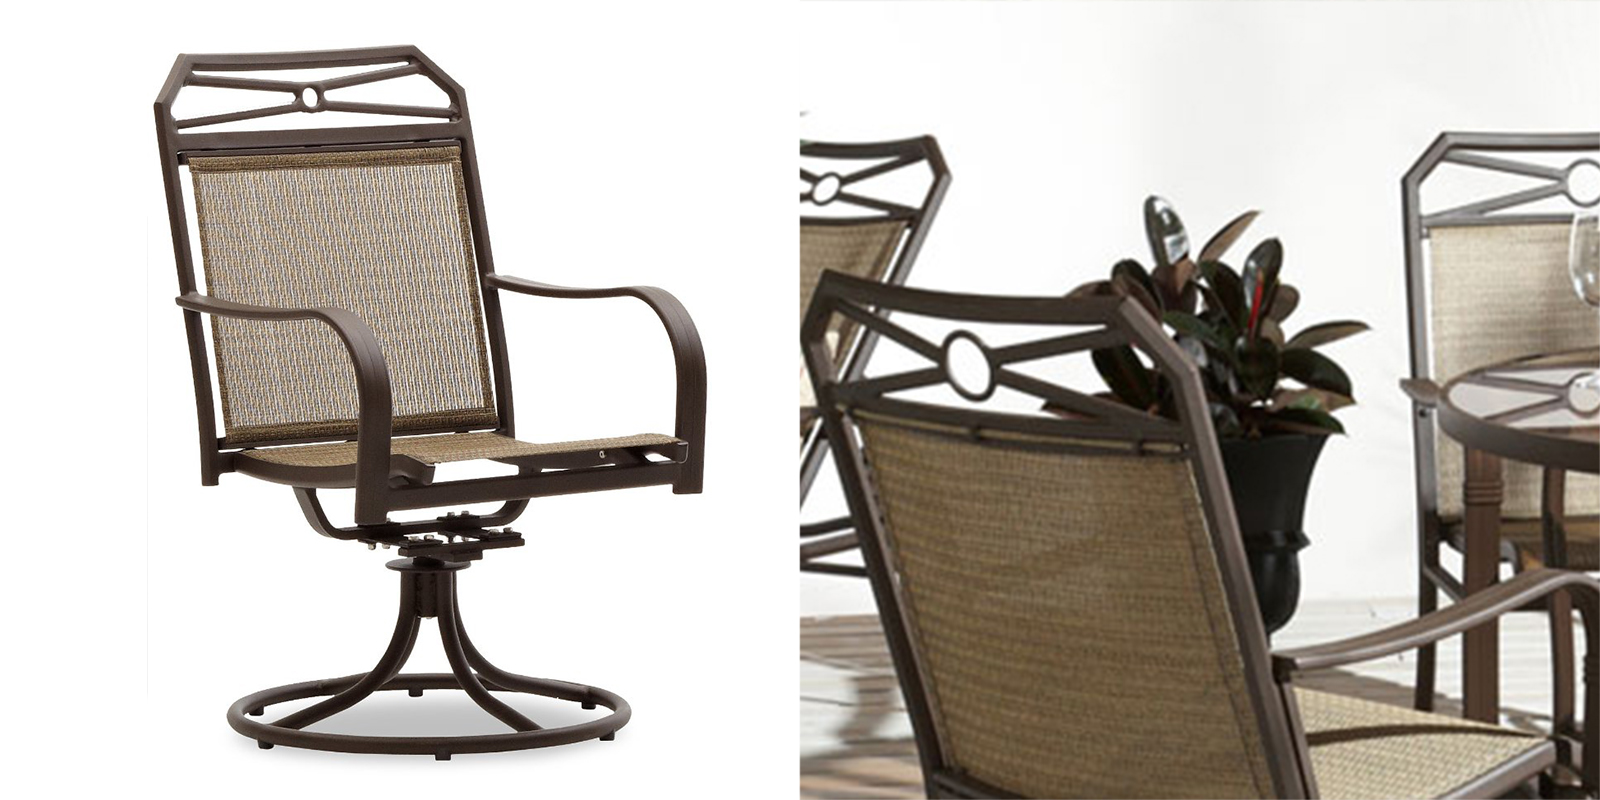 Patio Chair - Swivel Rocker Arm Chair